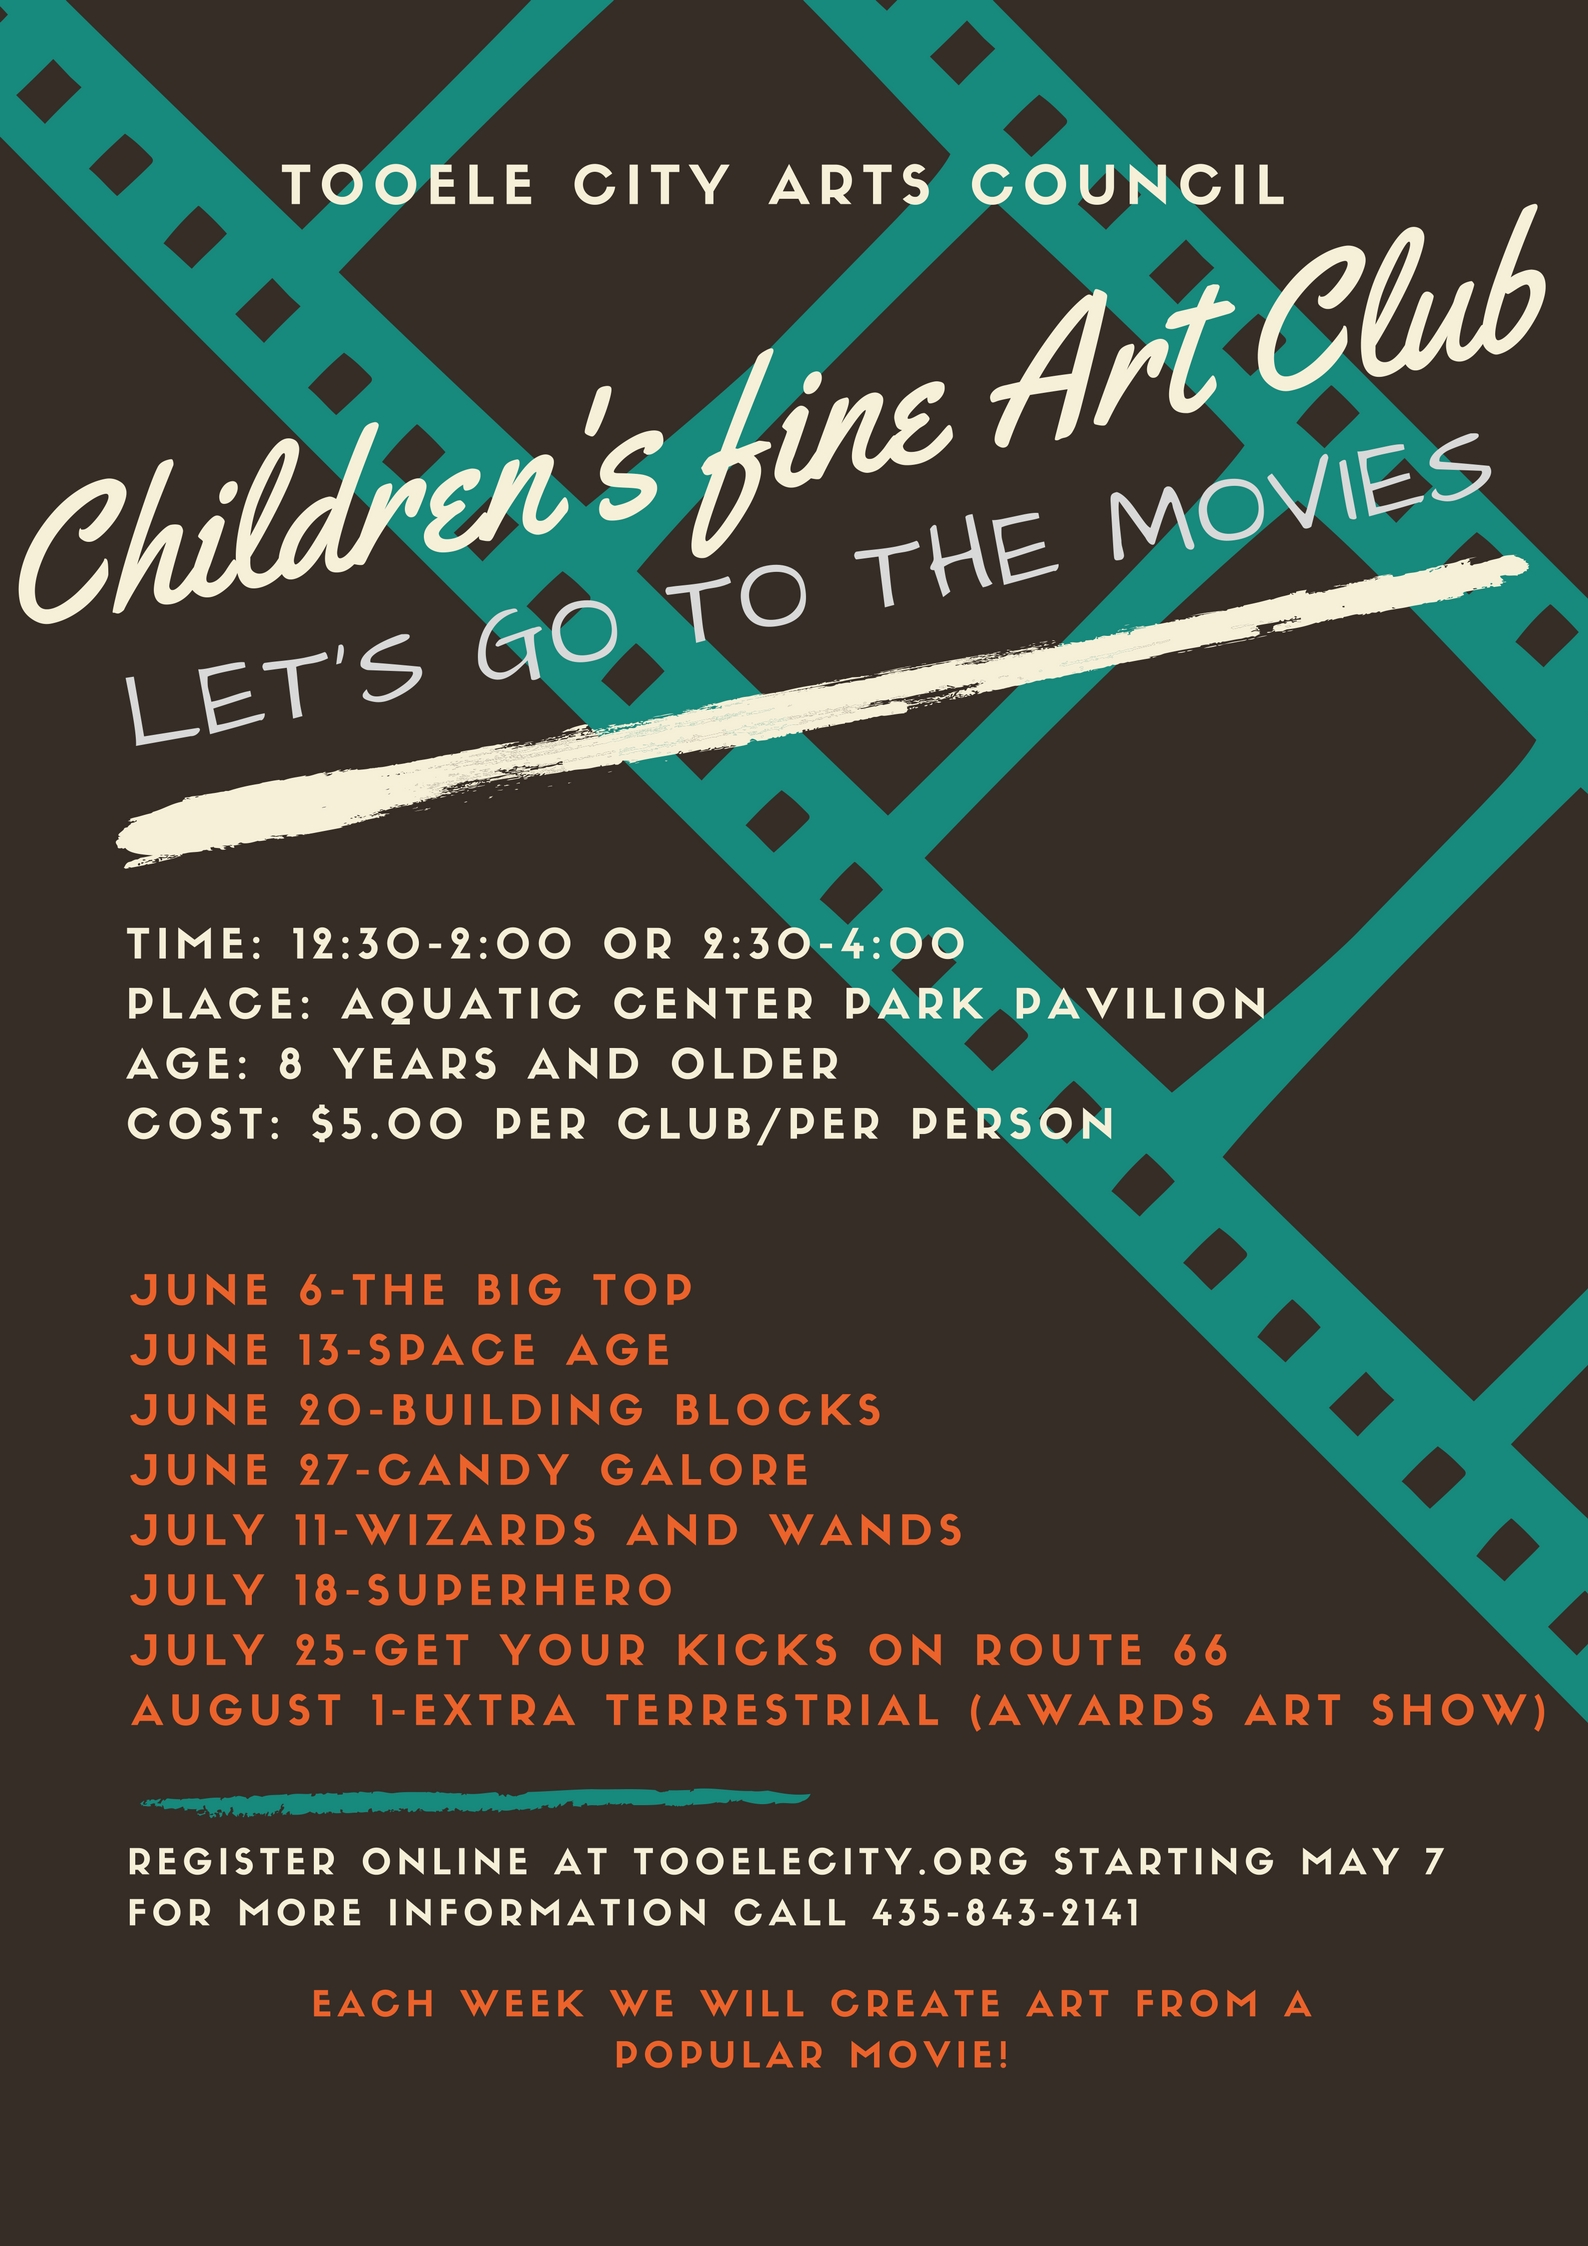 Children's Fine Art Club @ Aquatic Center Park | Tooele | Utah | United States